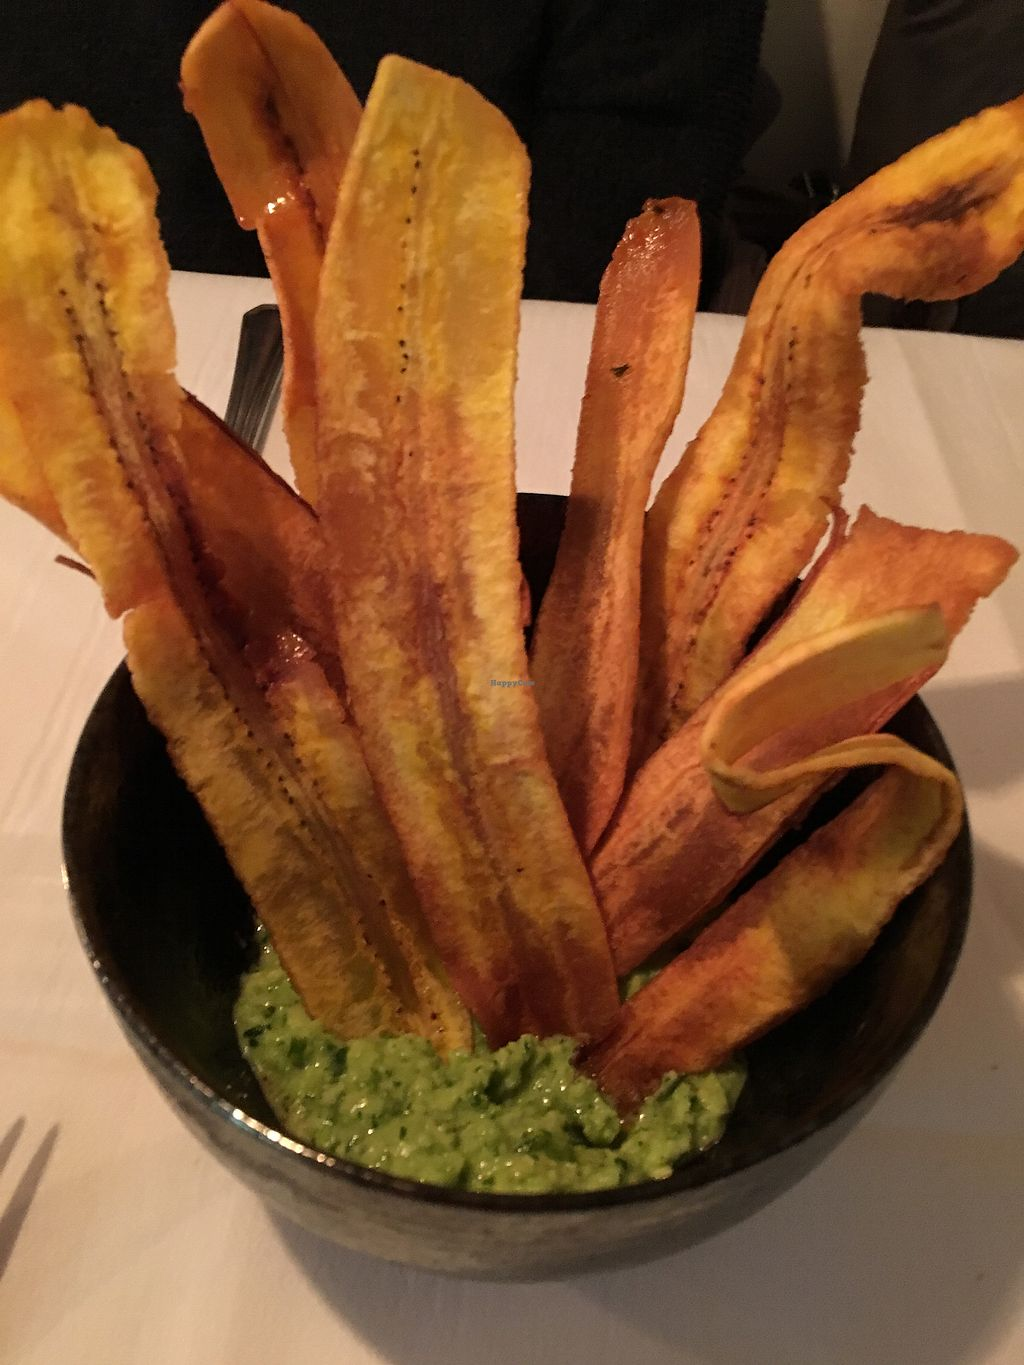 """Photo of Three Chef's Bistro  by <a href=""""/members/profile/ralphsnowman"""">ralphsnowman</a> <br/>Plantain chips <br/> February 18, 2018  - <a href='/contact/abuse/image/99472/360630'>Report</a>"""